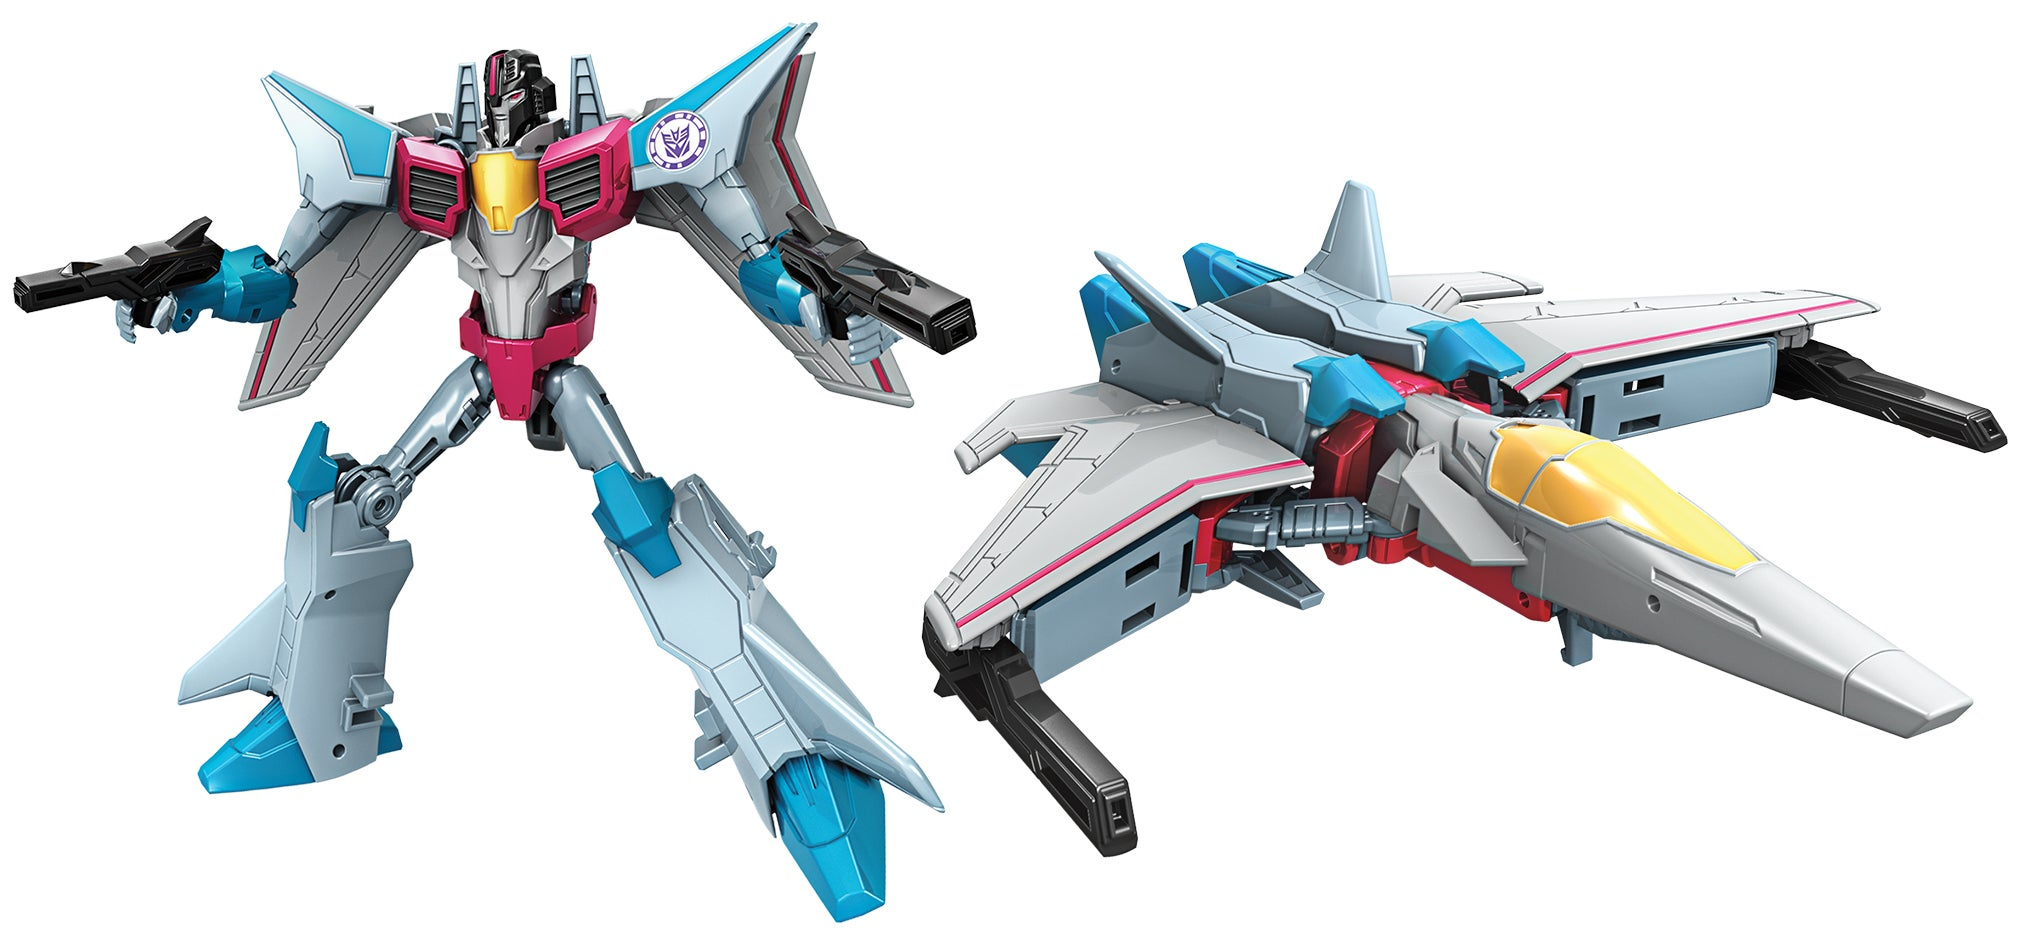 The New Robots In Disguise Toys Are Inspired By The '80s ...